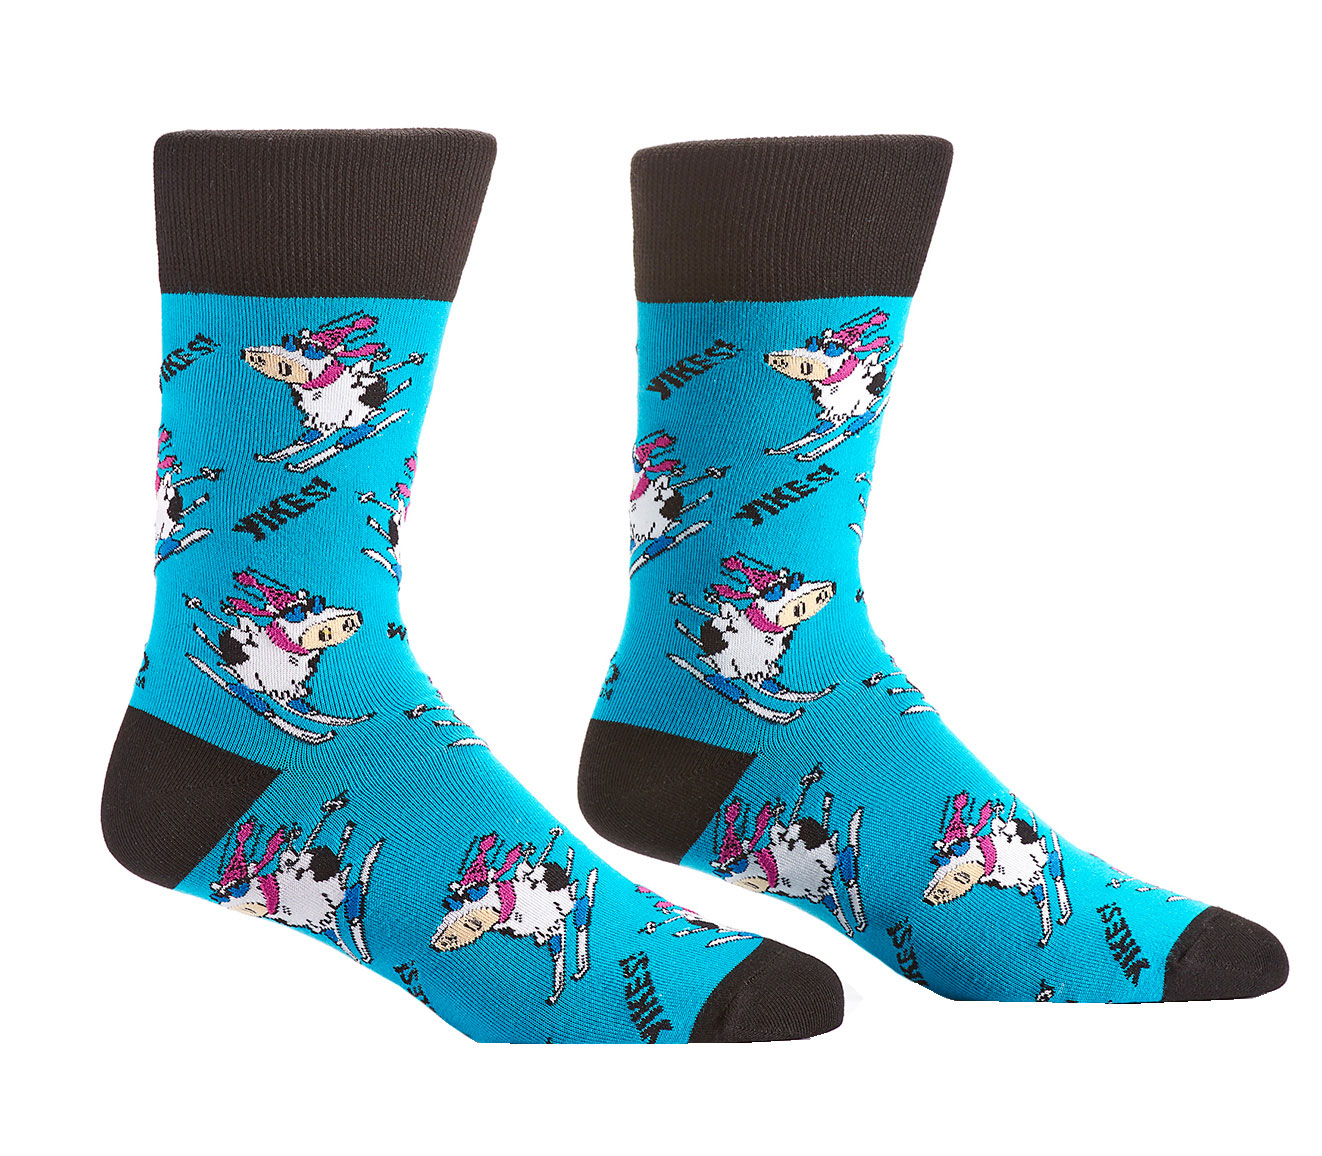 All the novelty socks you can imagine for women, men, and kids. Ninjas, unicorns, bigfoot? Yup we've got that. Cats that fly, bears on bikes? That too. Pizza, tacosaurus, pinatas—anything you can think of, we have a crew or knee high sock unique as you.